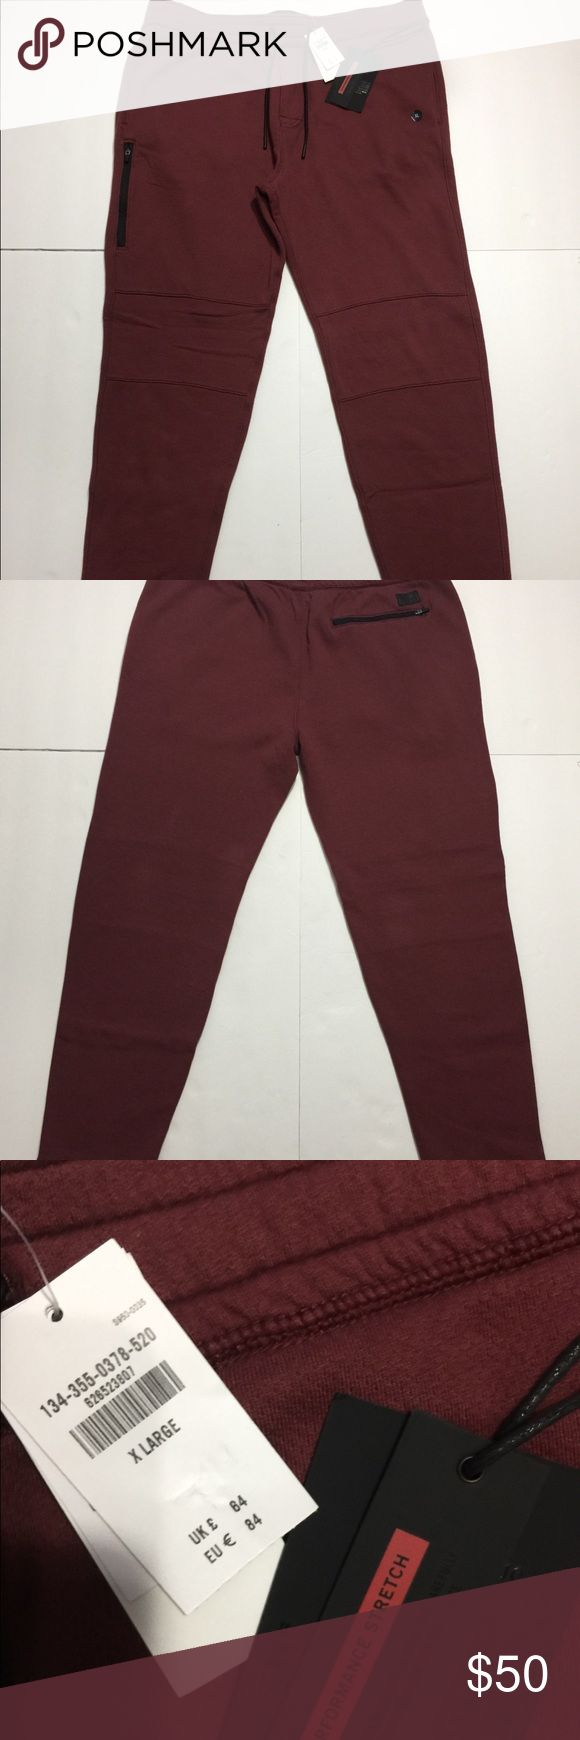 ONE DAY SALE FINAL PRICE Men's Abercrombie joggers ONE DAY SALE FINAL PRICE New with tags offer up so we can negotiate Abercrombie & Fitch Pants Sweatpants & Joggers